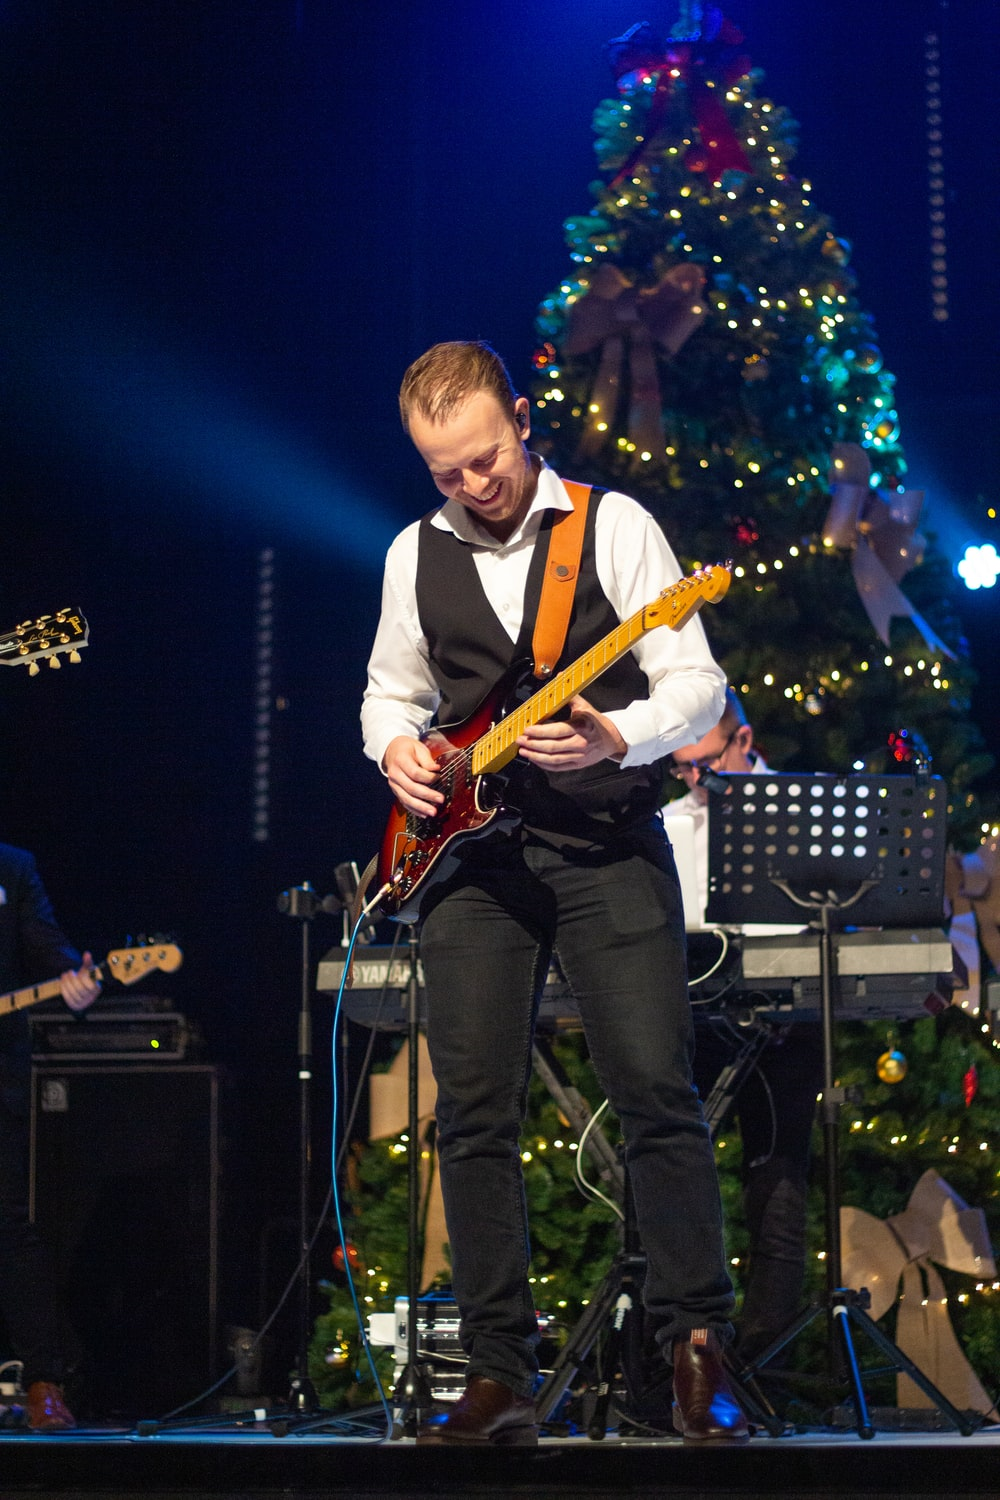 man playing red and brown guitar beside Christmas tree